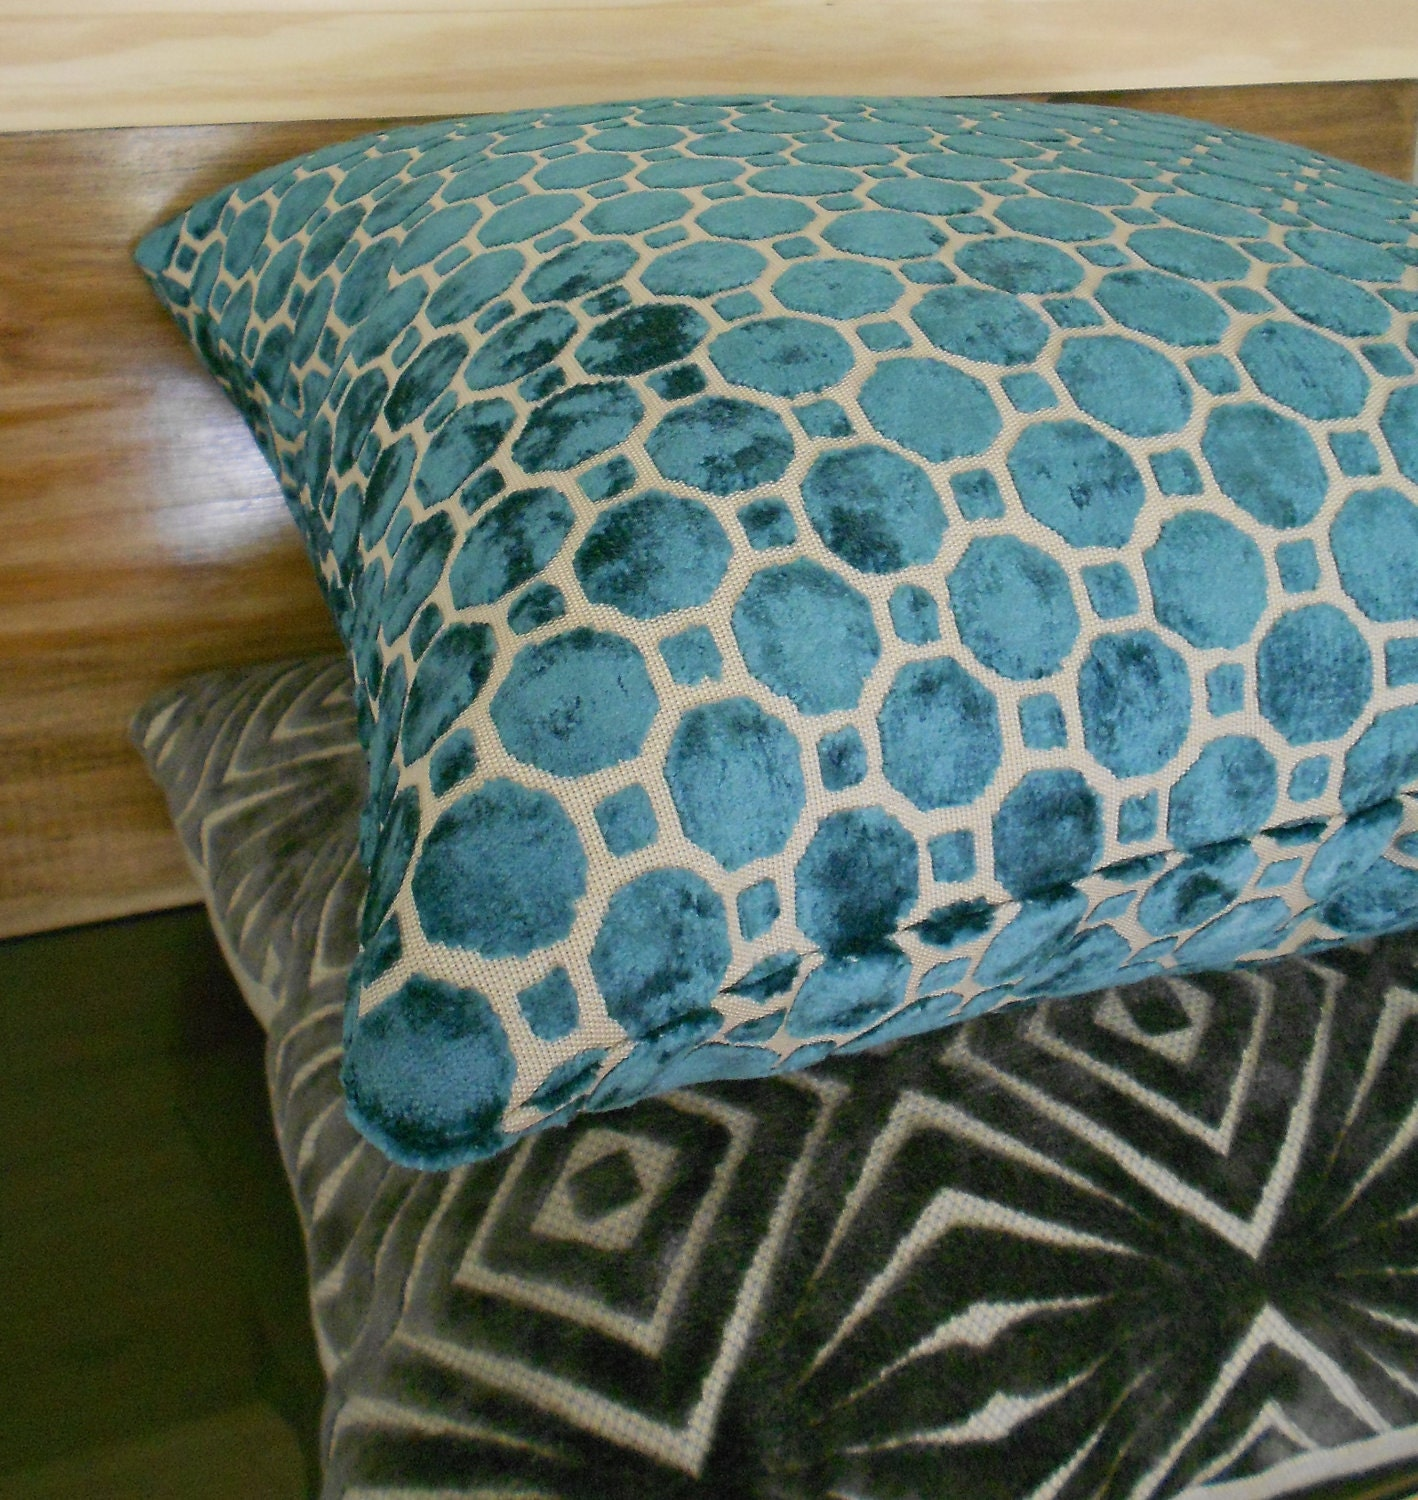 Decorative Pillow Turquoise : Items similar to Turquoise velvet decorative throw pillow cover on Etsy